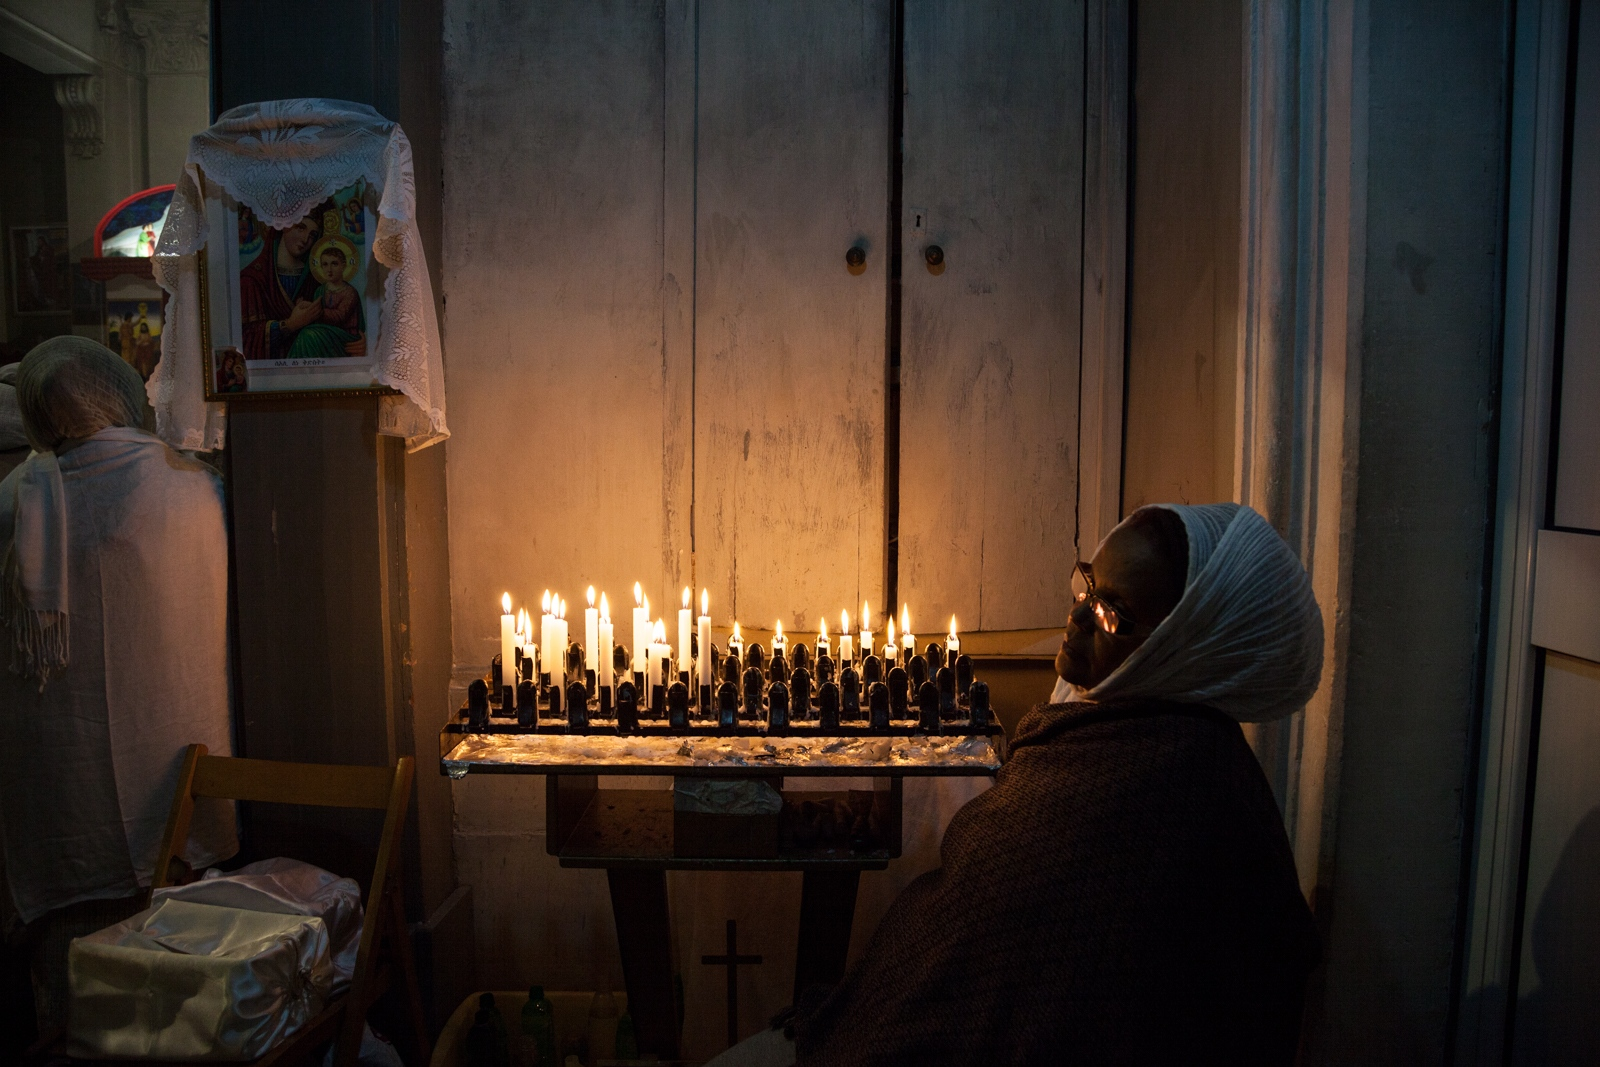 Jan. 6, 2015 - Inside the Eritrean Orthodox Tewahdo Church in Piazza San Salvatore in Campo, downtown Rome, a woman takes part to the celebration for Orthodox Christmas Day.